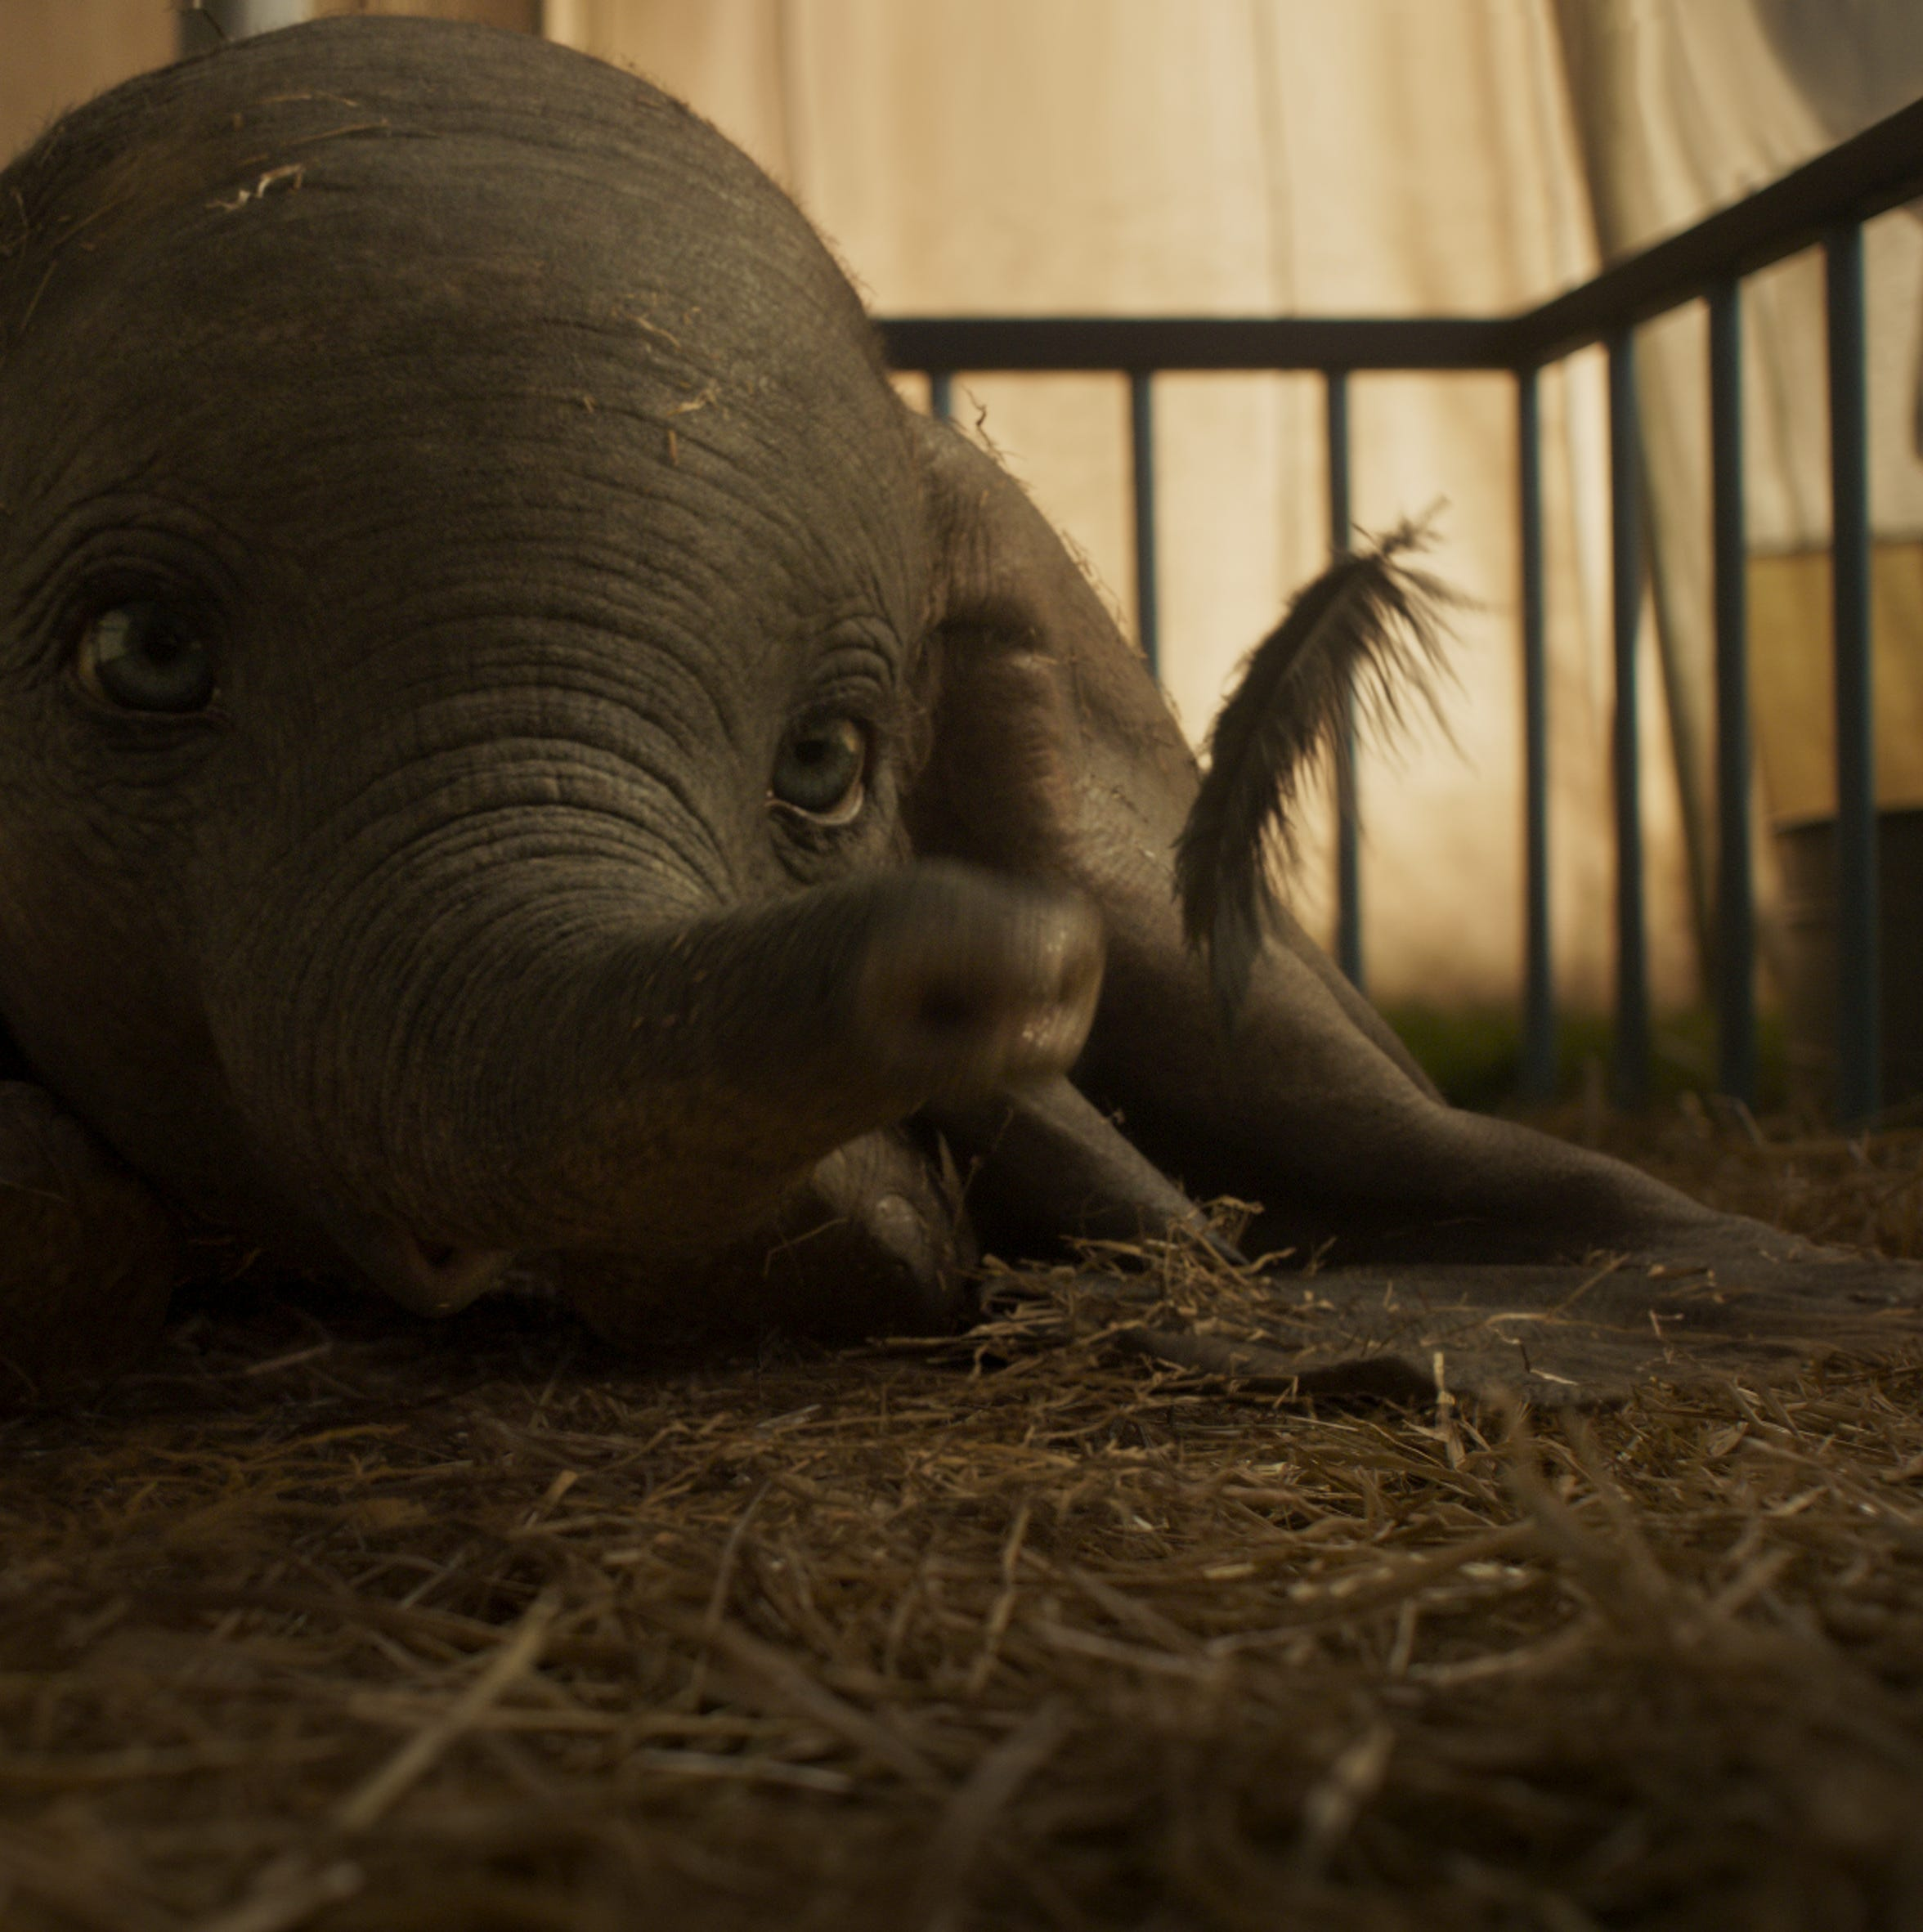 Elephants can't fly — and 15 more fun facts in honor of 'Dumbo'